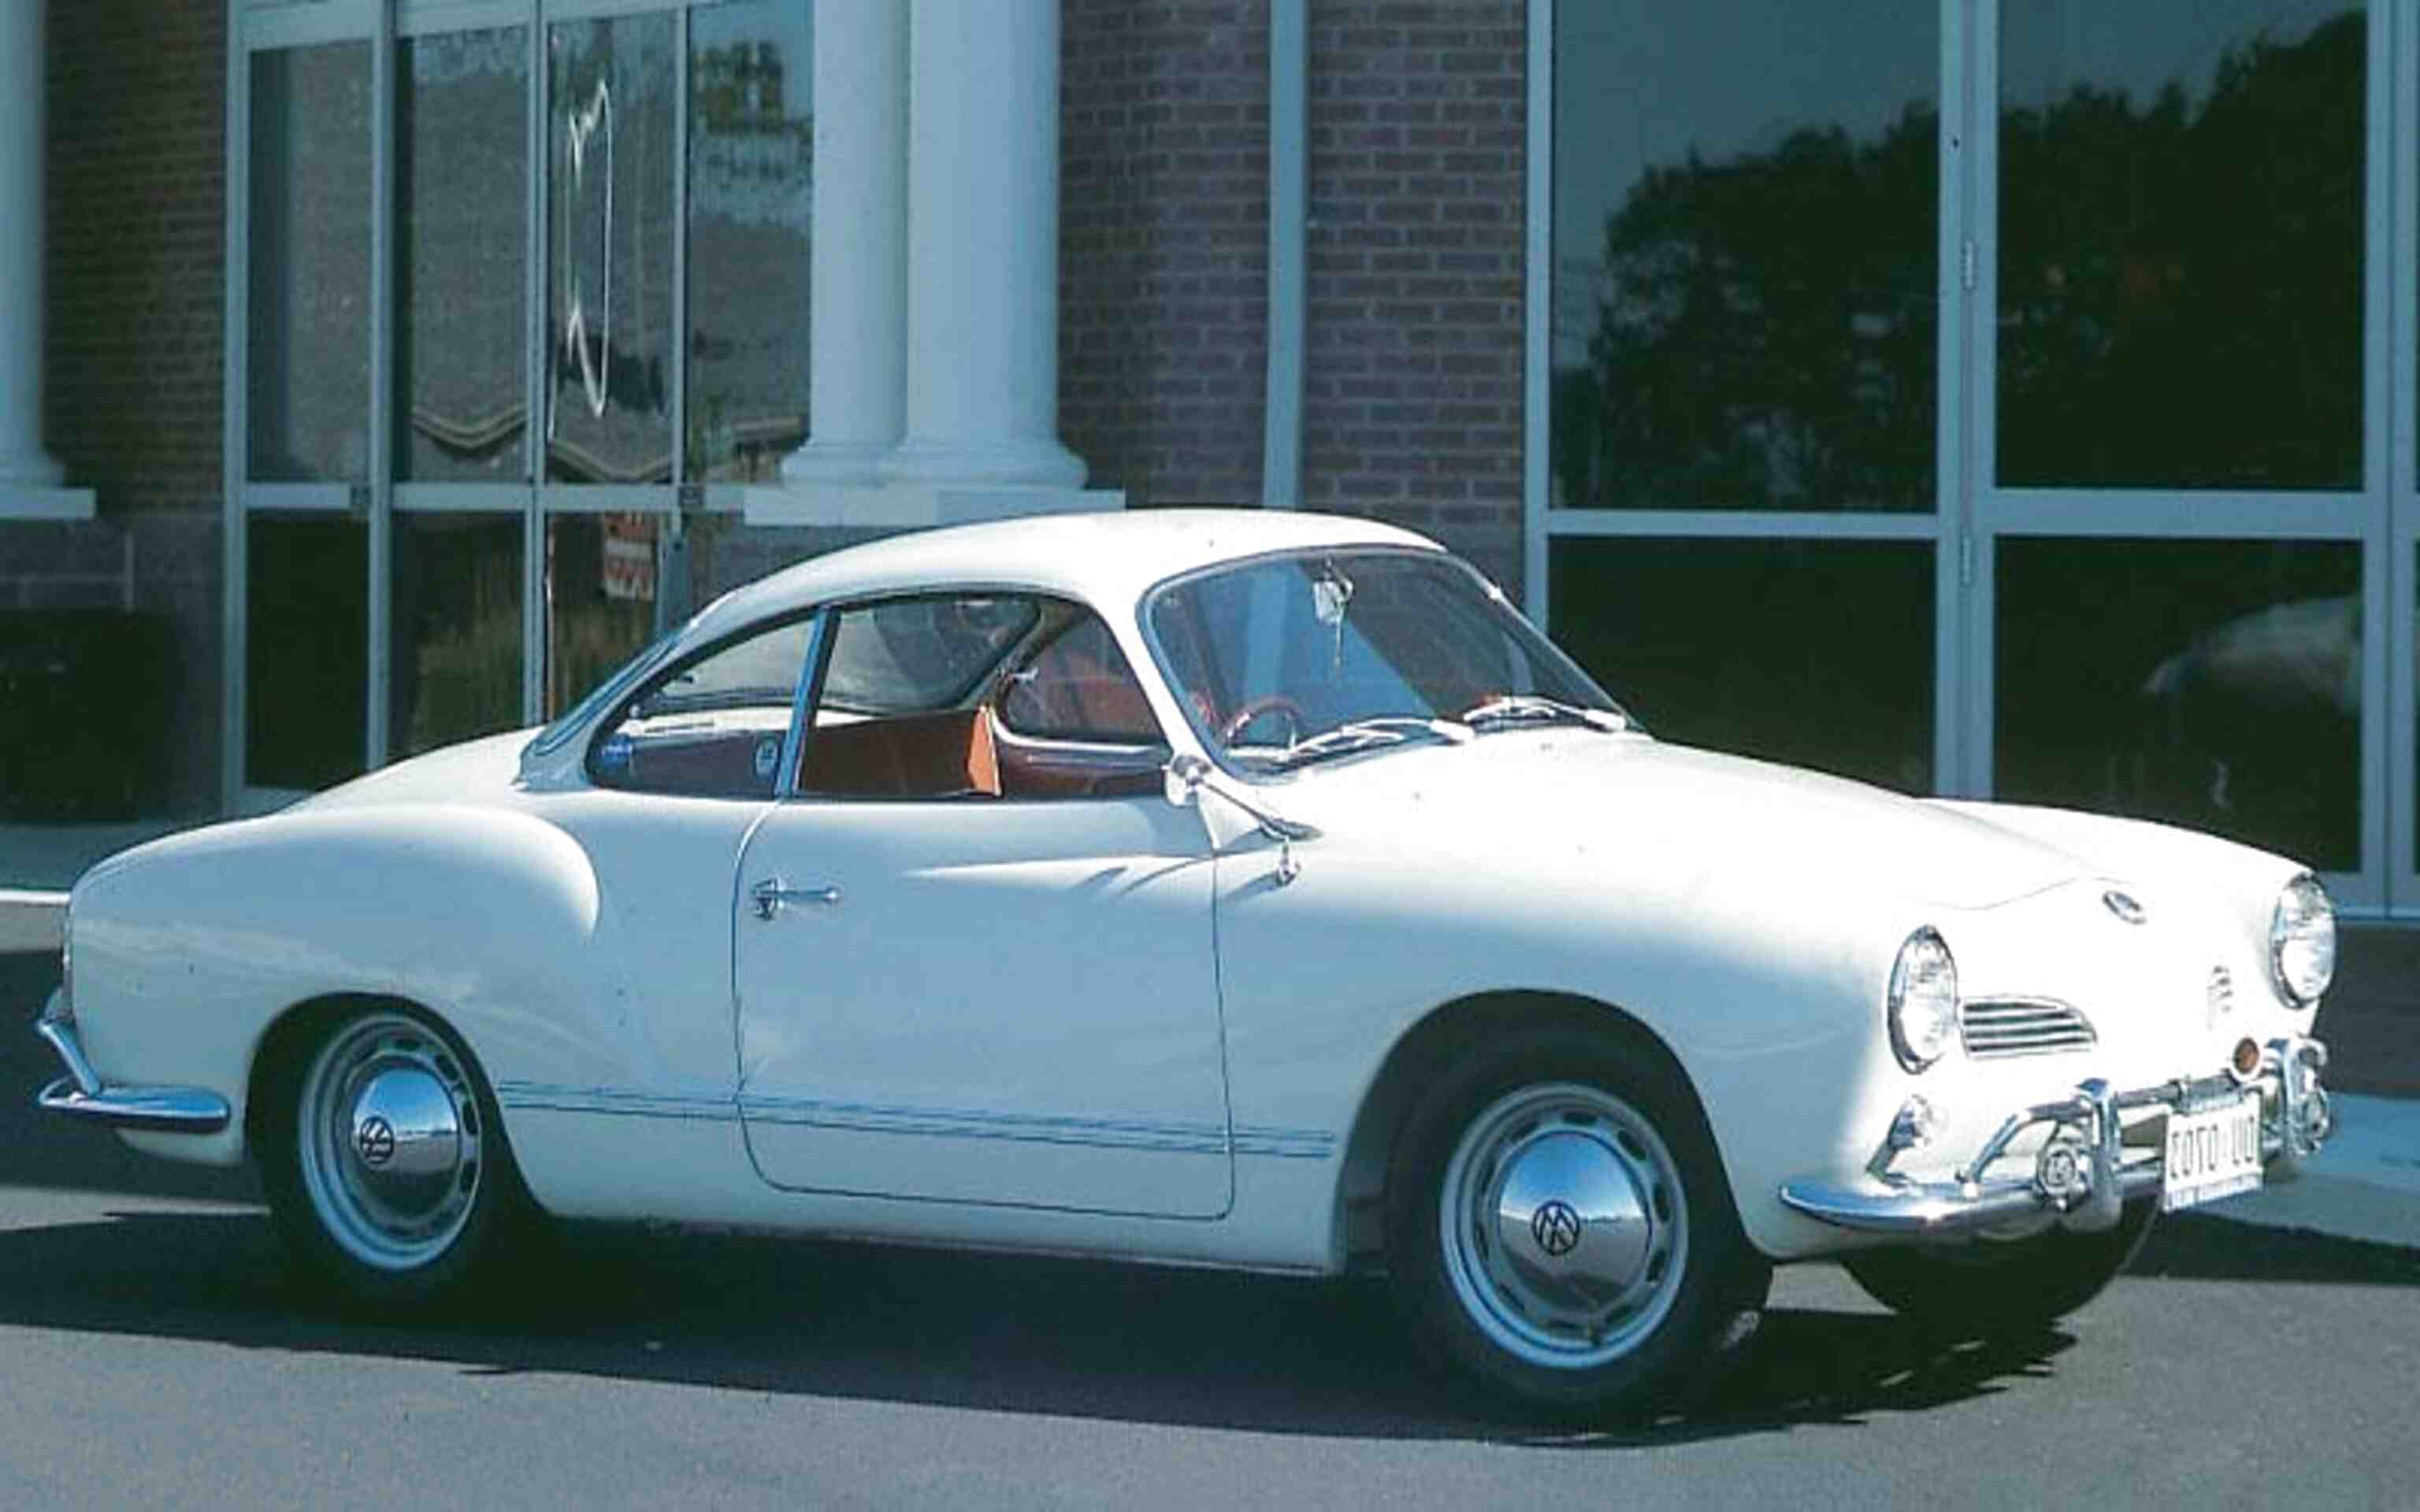 1963 Karmann Ghia for sale | Only 2 left at -75%